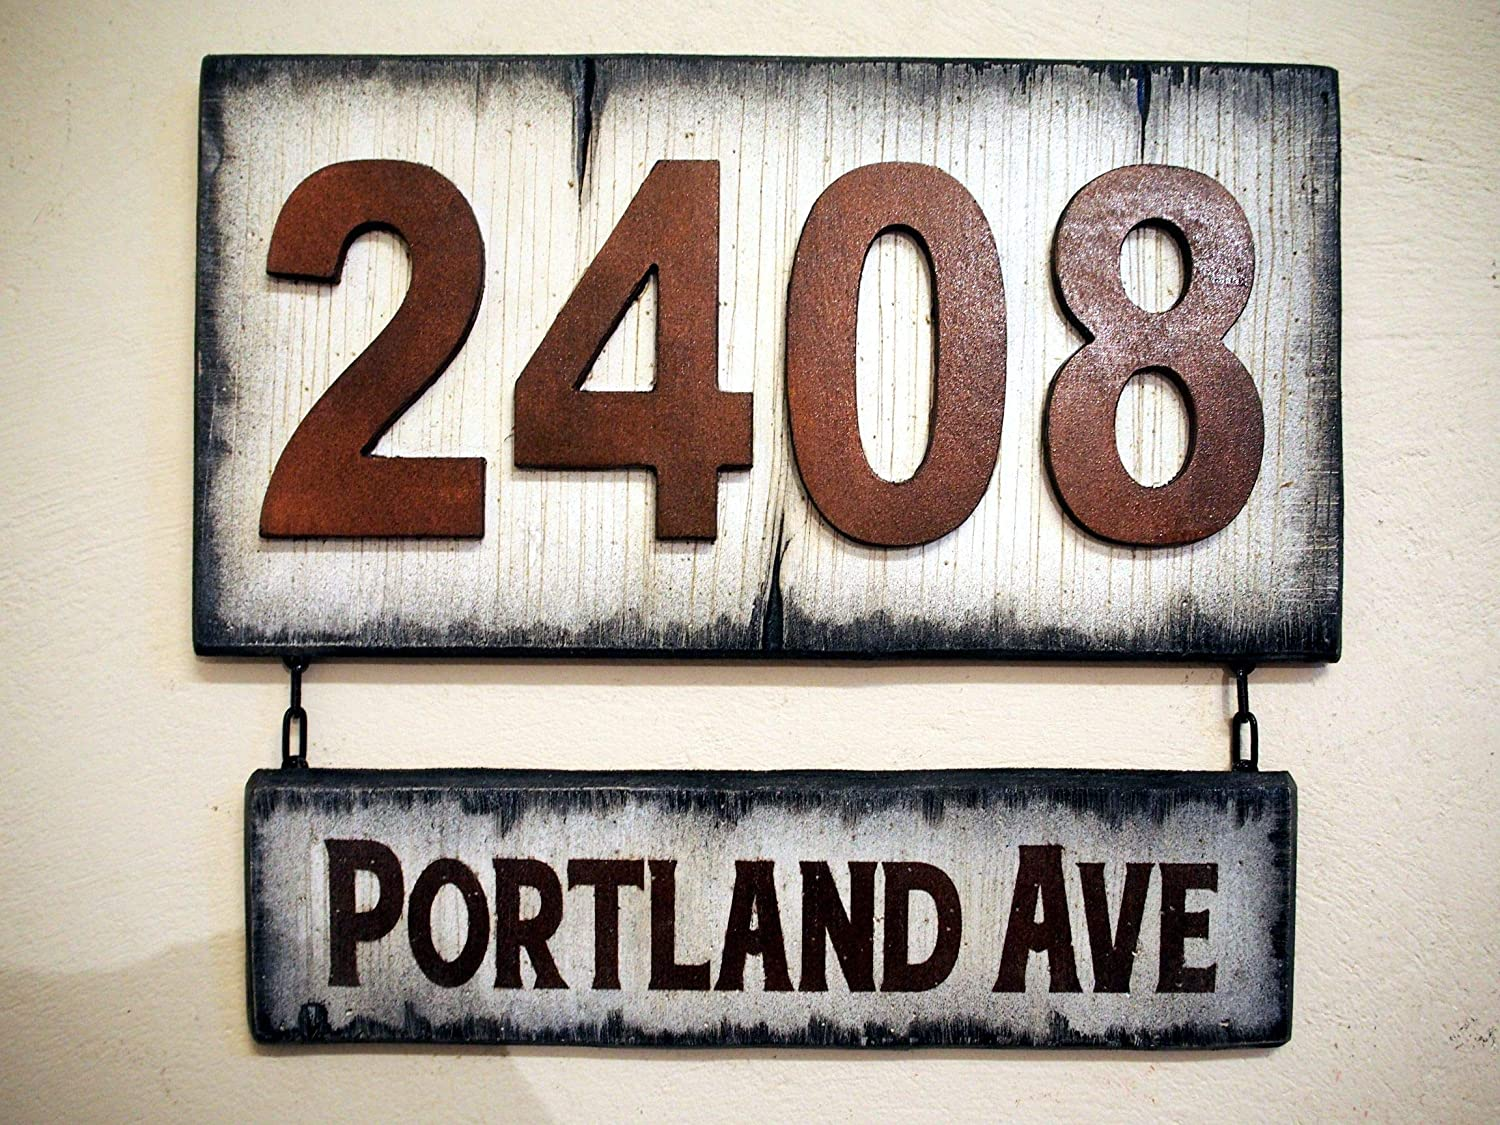 Rustic House Address Signs | Rubbed bronze-colored numbers on antique white plaque with hanging street name sign | Custom Address Plaque | Made of distressed Wood | House numbers, address sign